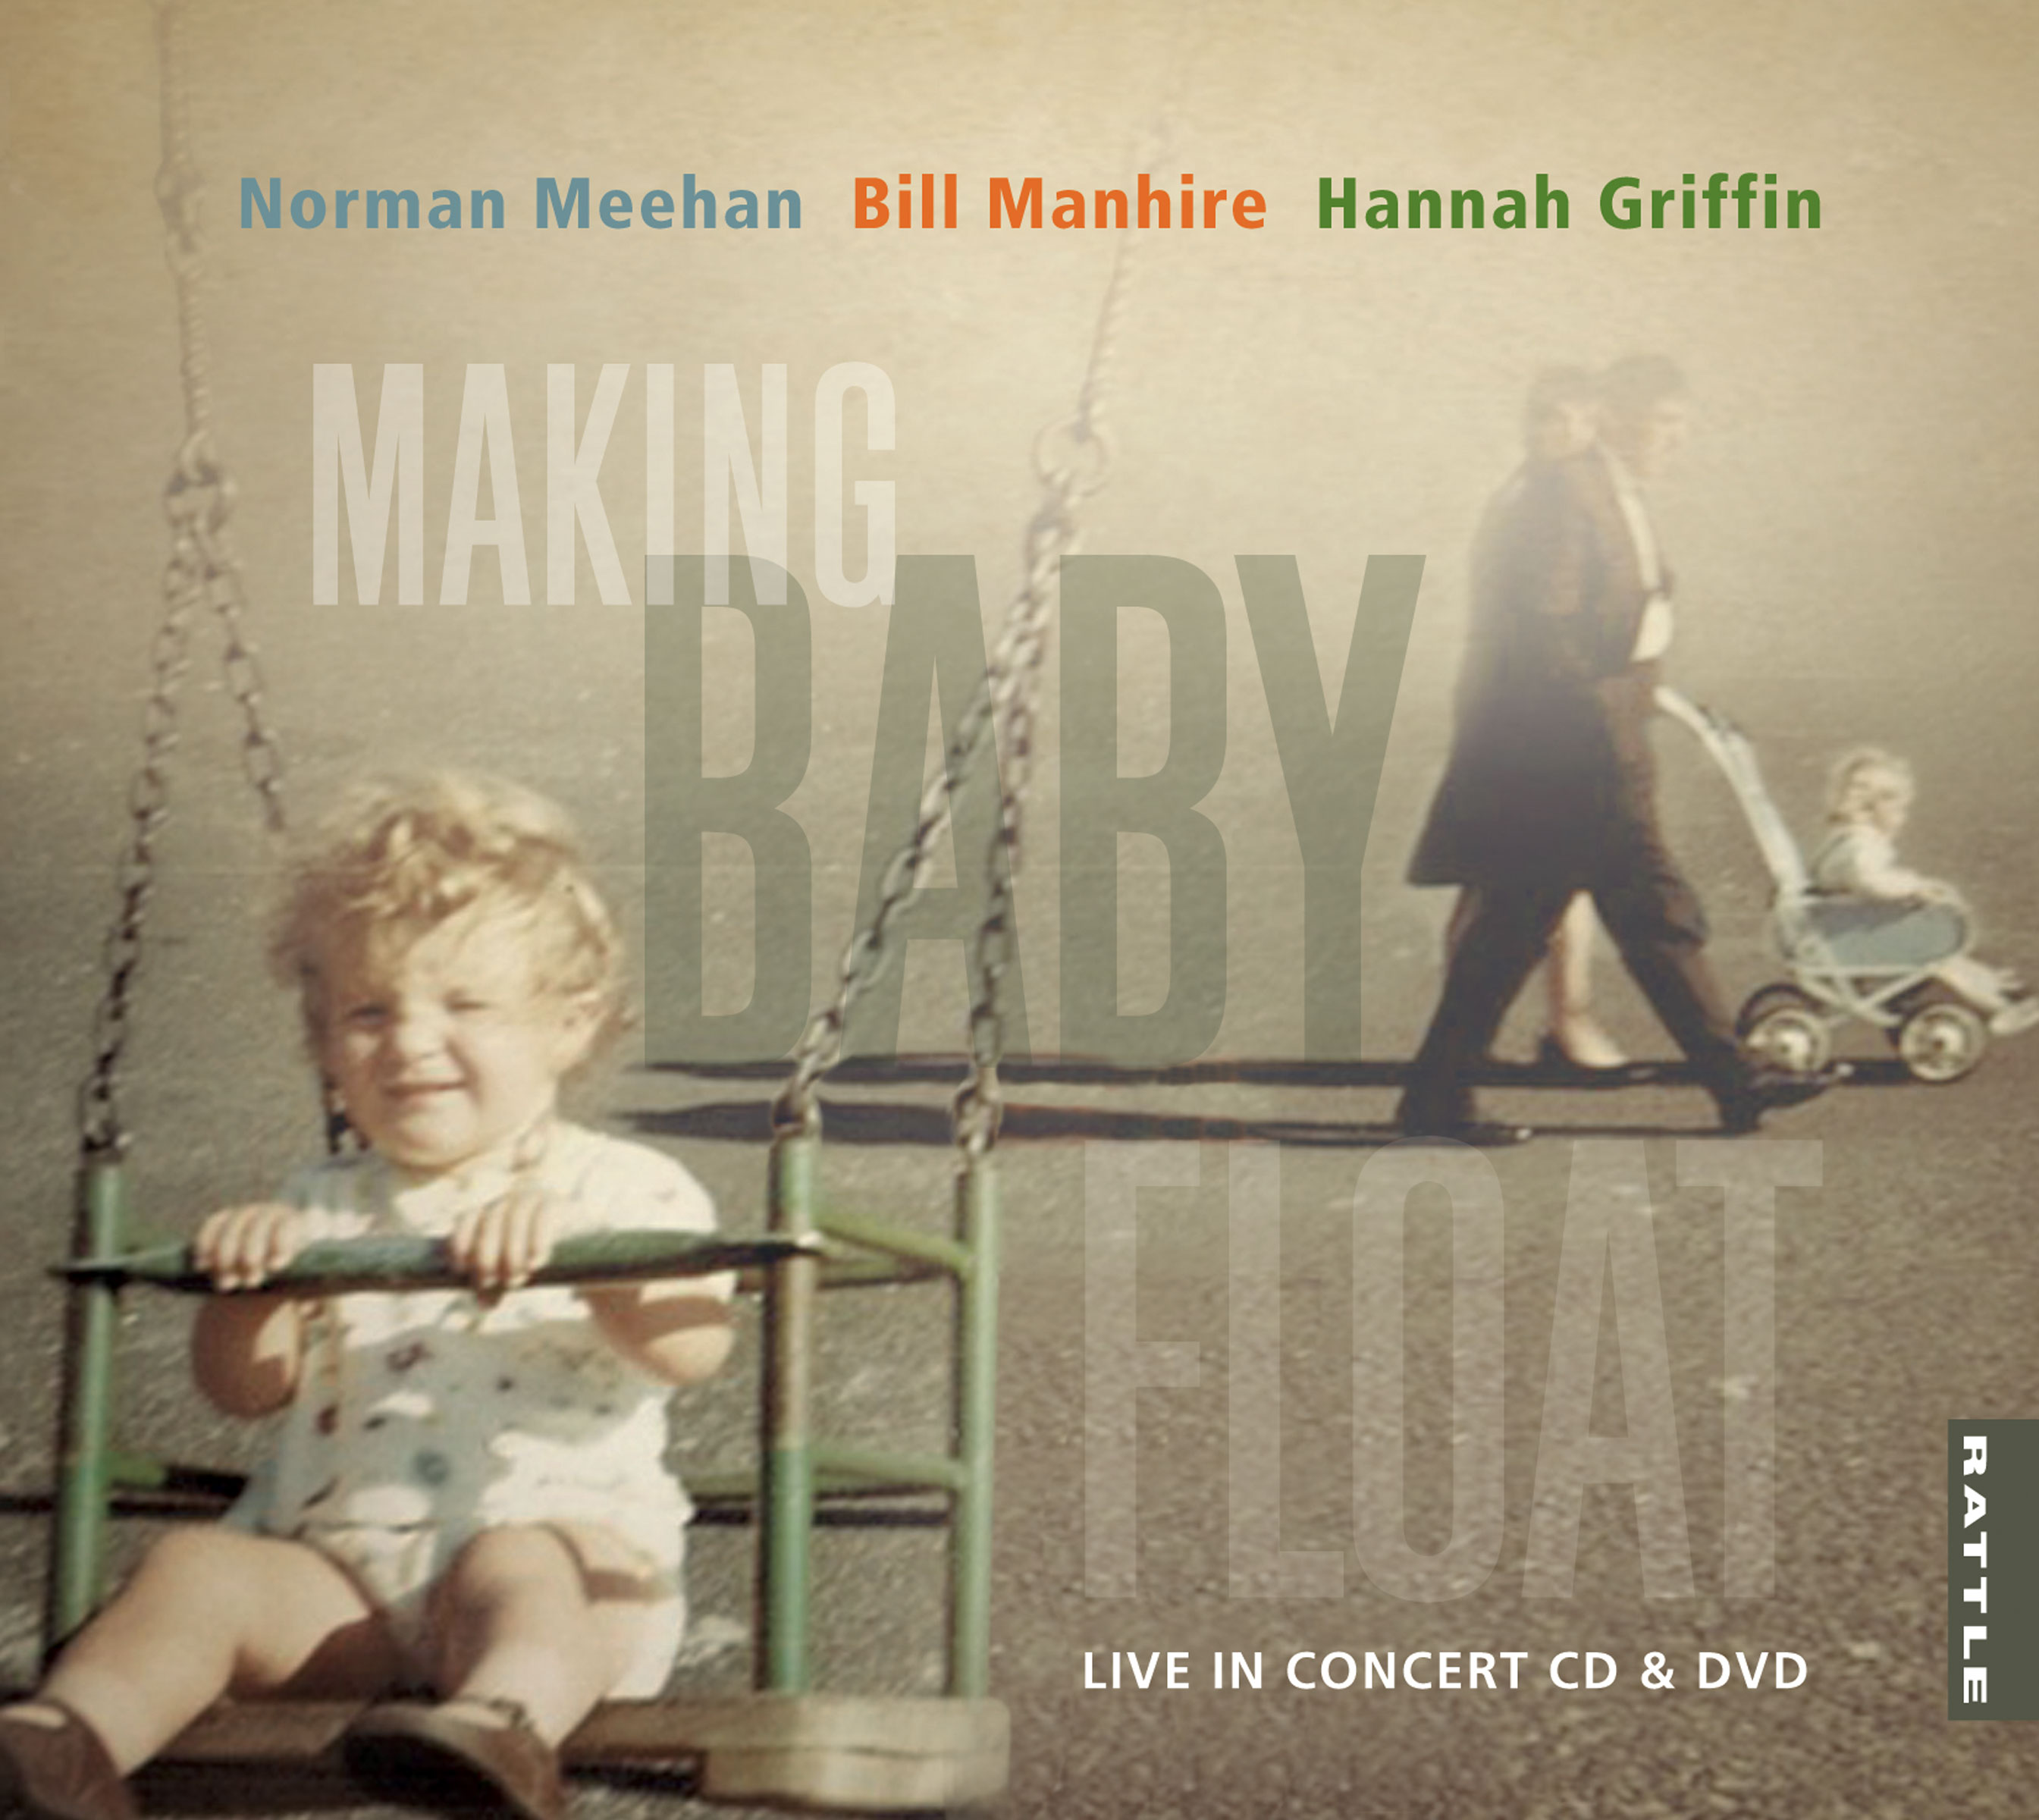 Norman Meehan | Making Baby Float - downloadable MP3 ALBUM